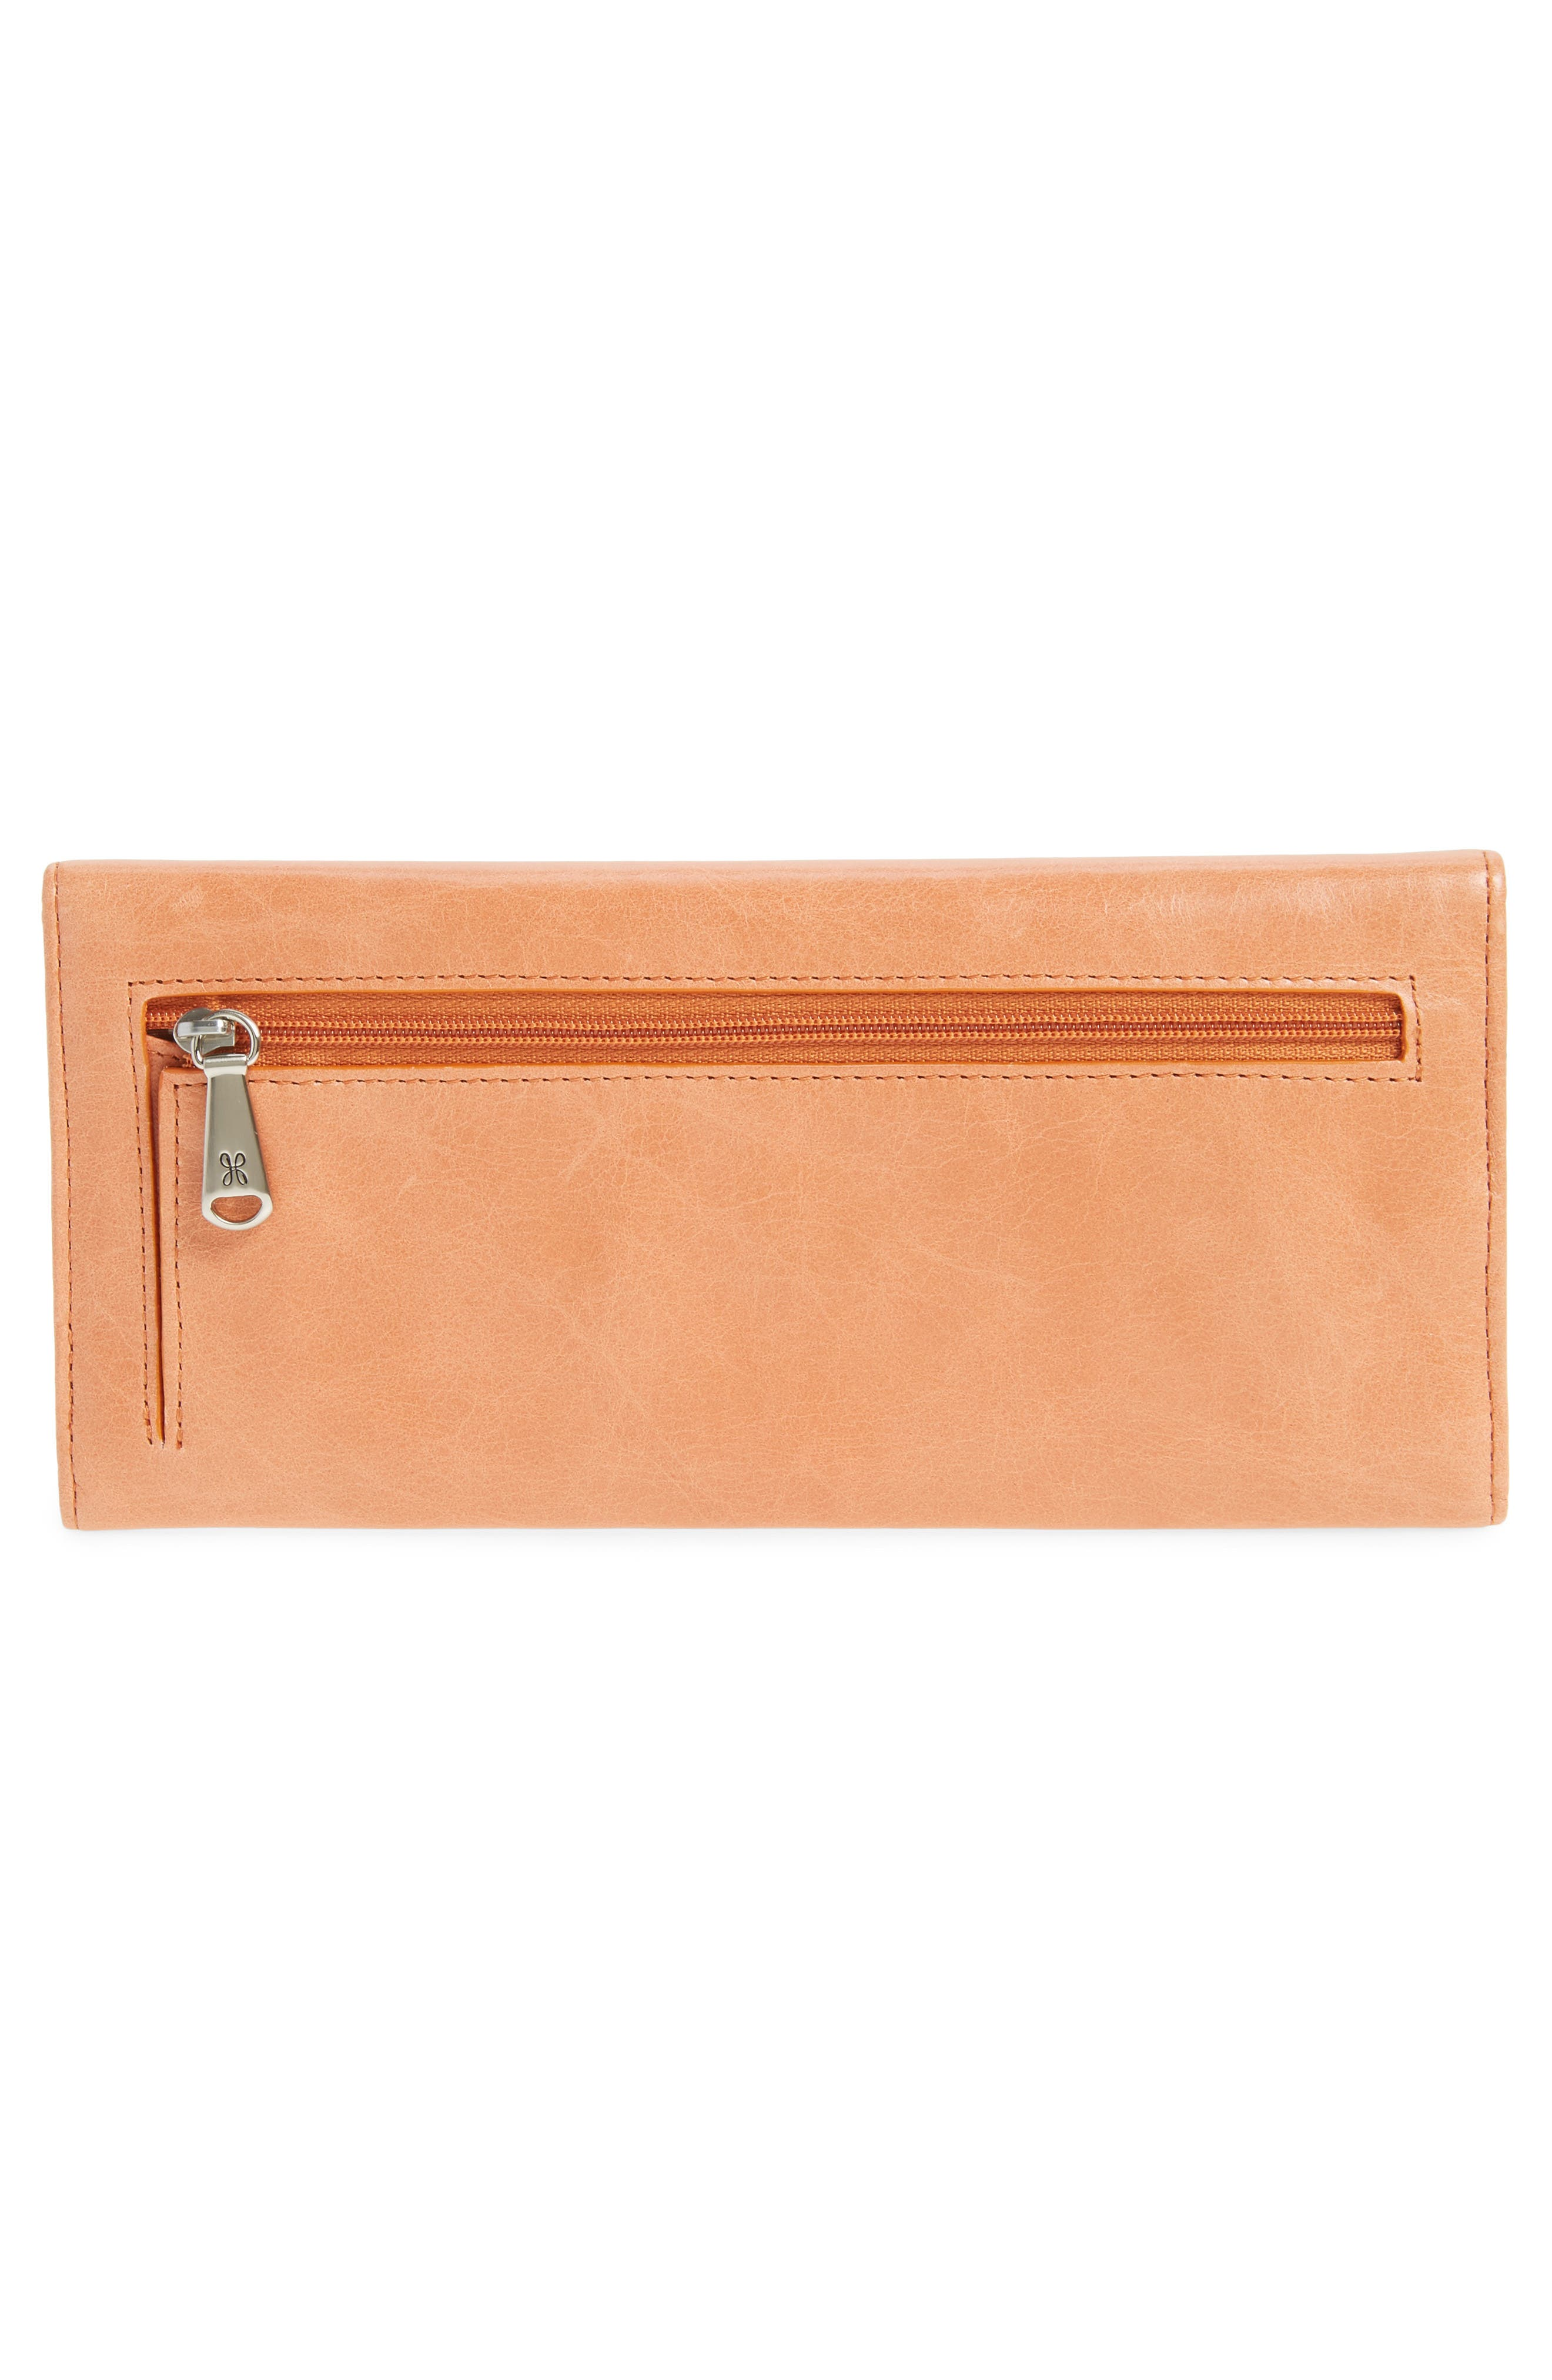 Alternate Image 3  - Hobo 'Sadie' Leather Wallet